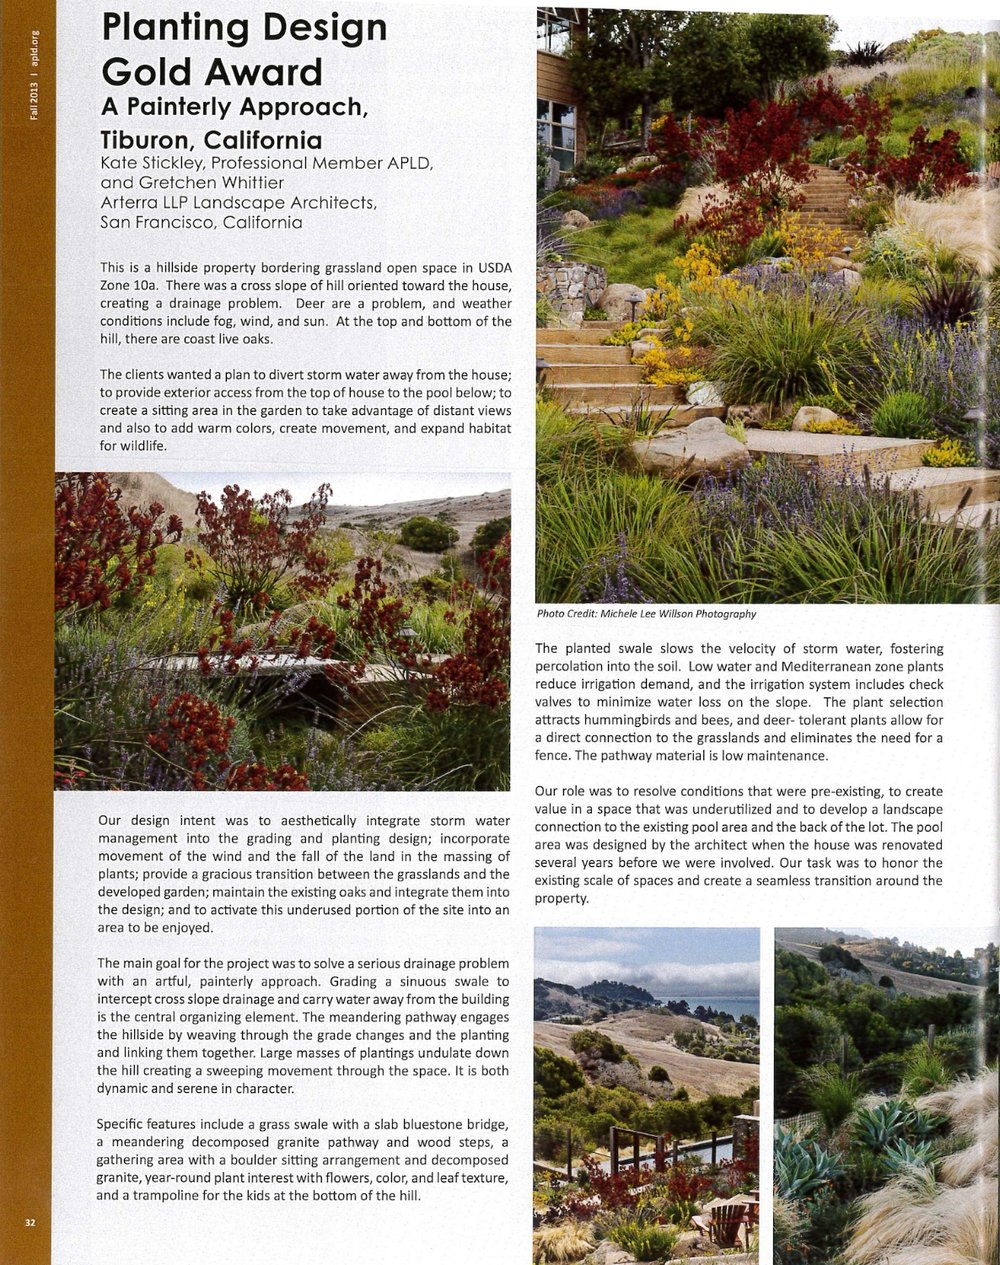 The Painterly Approach won a gold award from the APLD in 2013, for correcting a serious storm water and drainage problem .